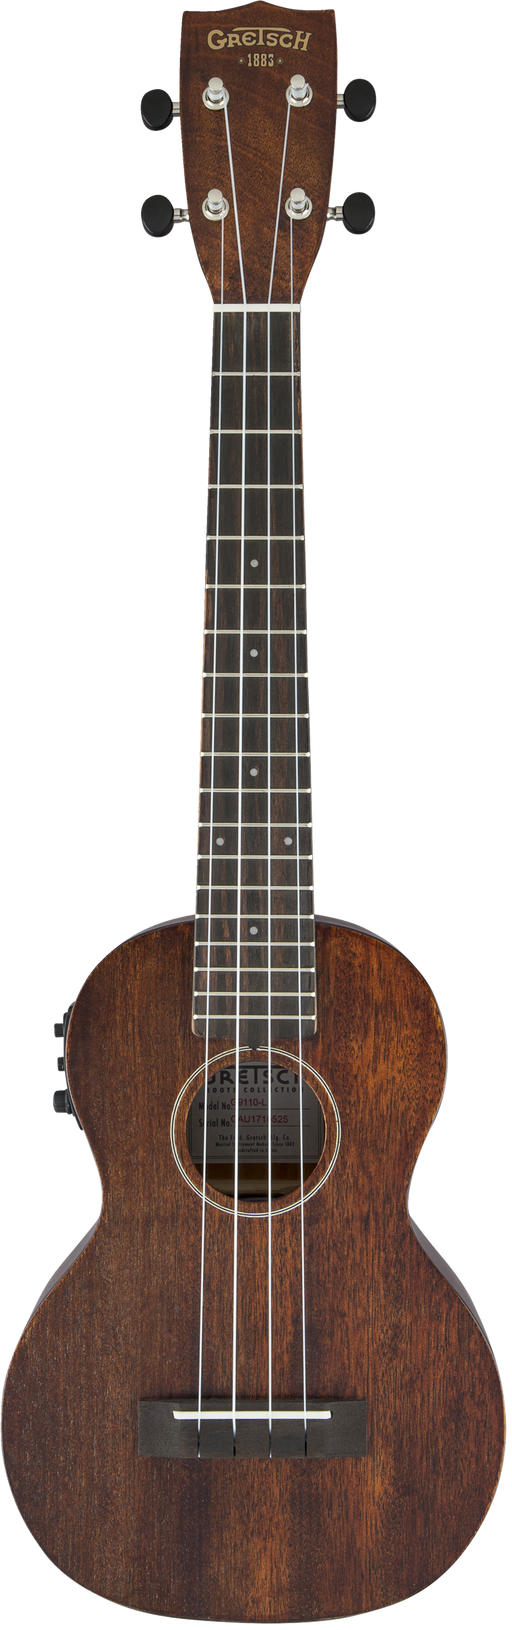 Gretsch G9110-L Concert Long-Neck A.E. Ukulele with Gig Bag Fishman Kula